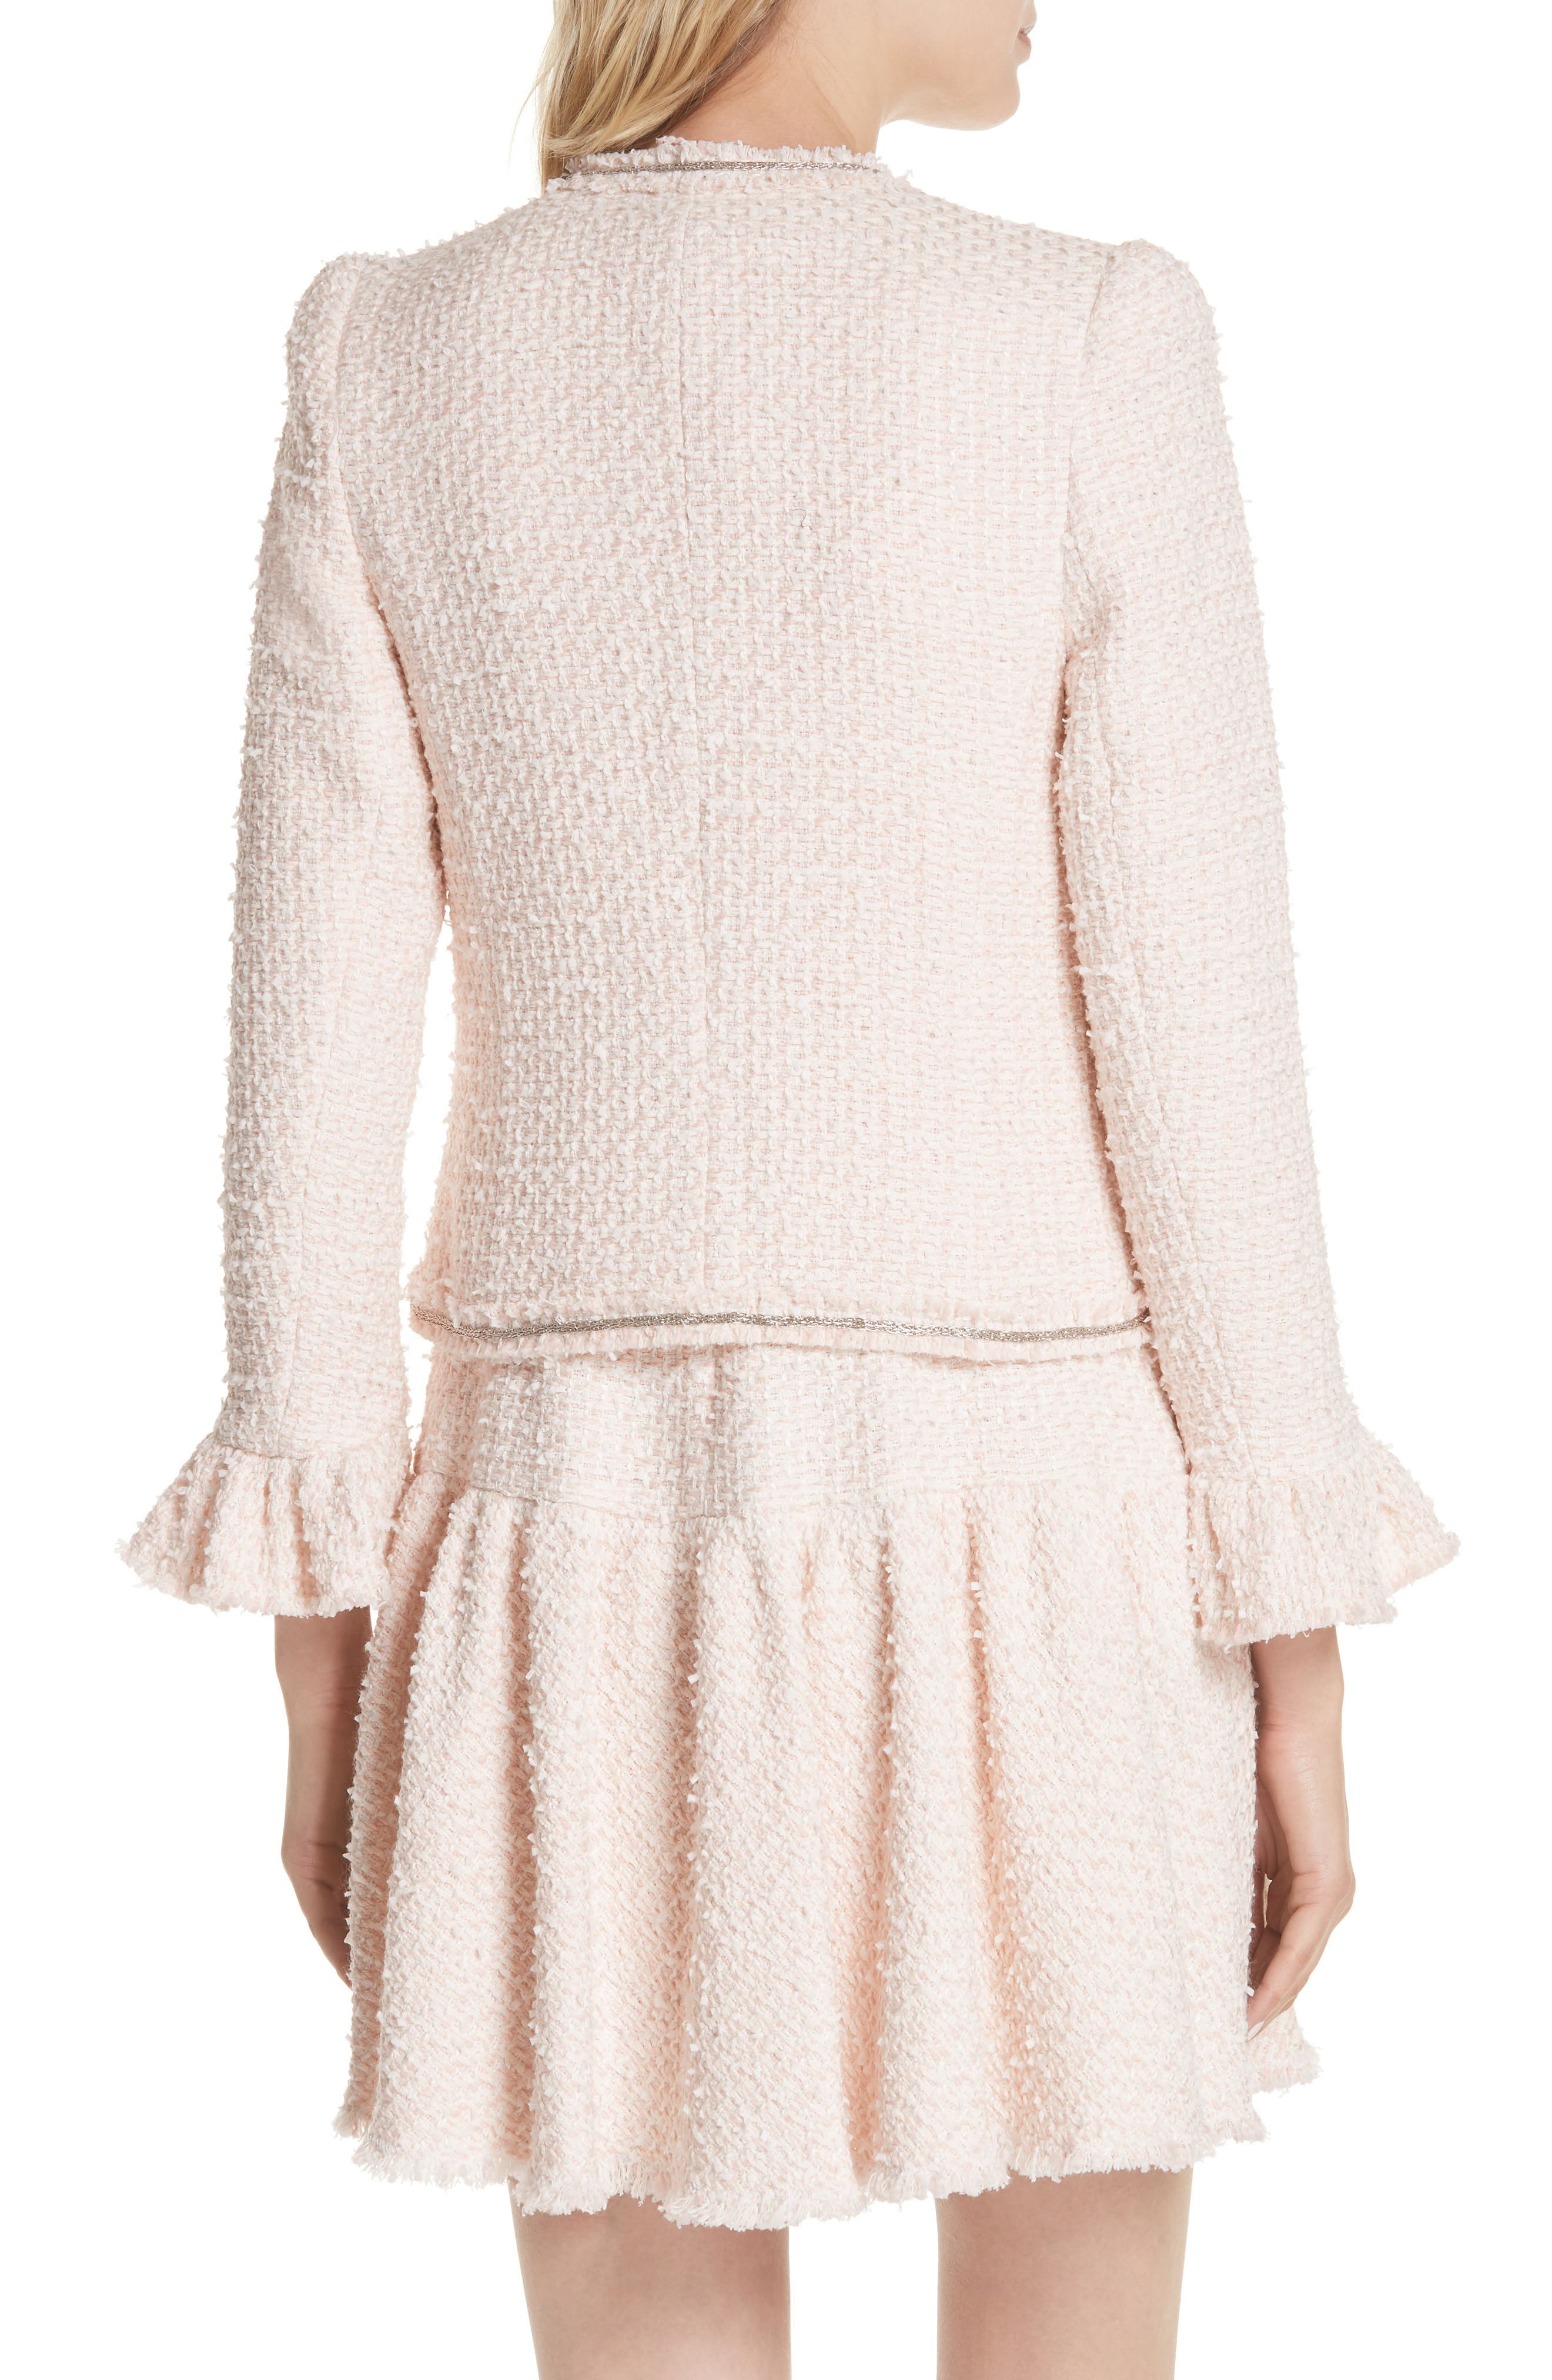 Ruffle Sleeve Tweed Jacket,                             Alternate thumbnail 2, color,                             Powder Pink Combo